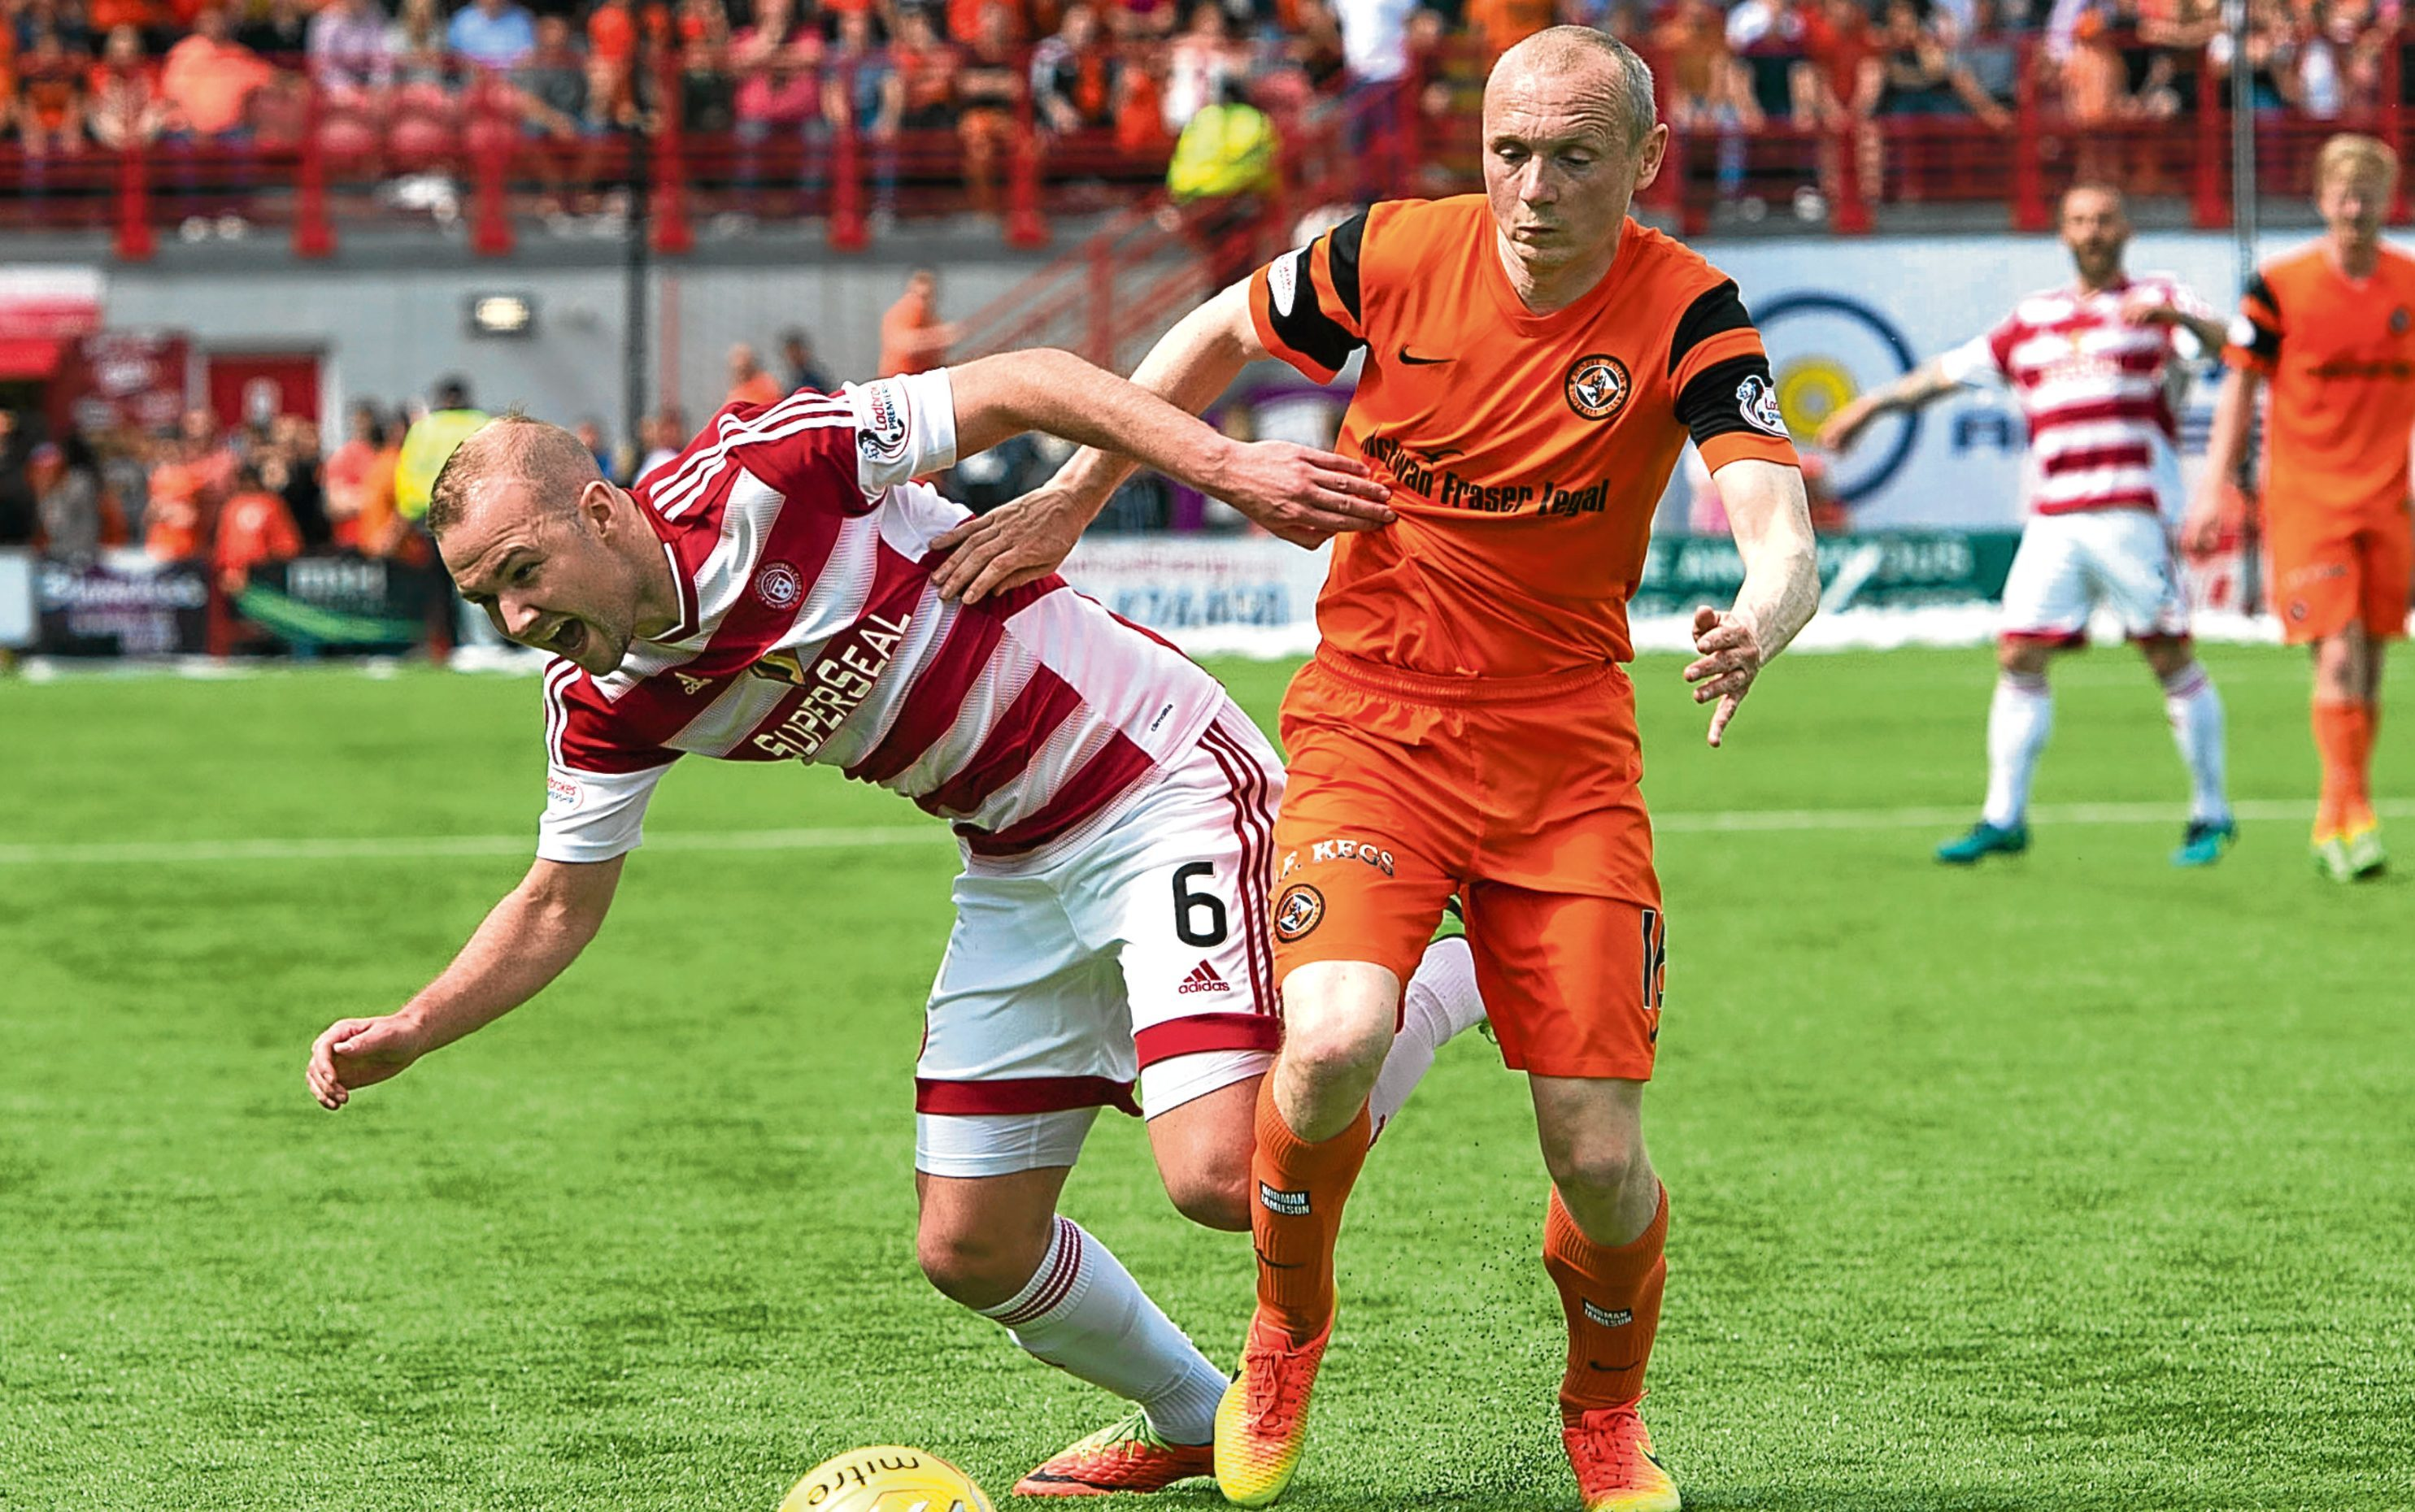 Dundee United midfielder Willo Flood tussles for the ball with Hamilton's Grant Gillespie in the Premiership play-off final second leg at the Superseal Stadium in May.